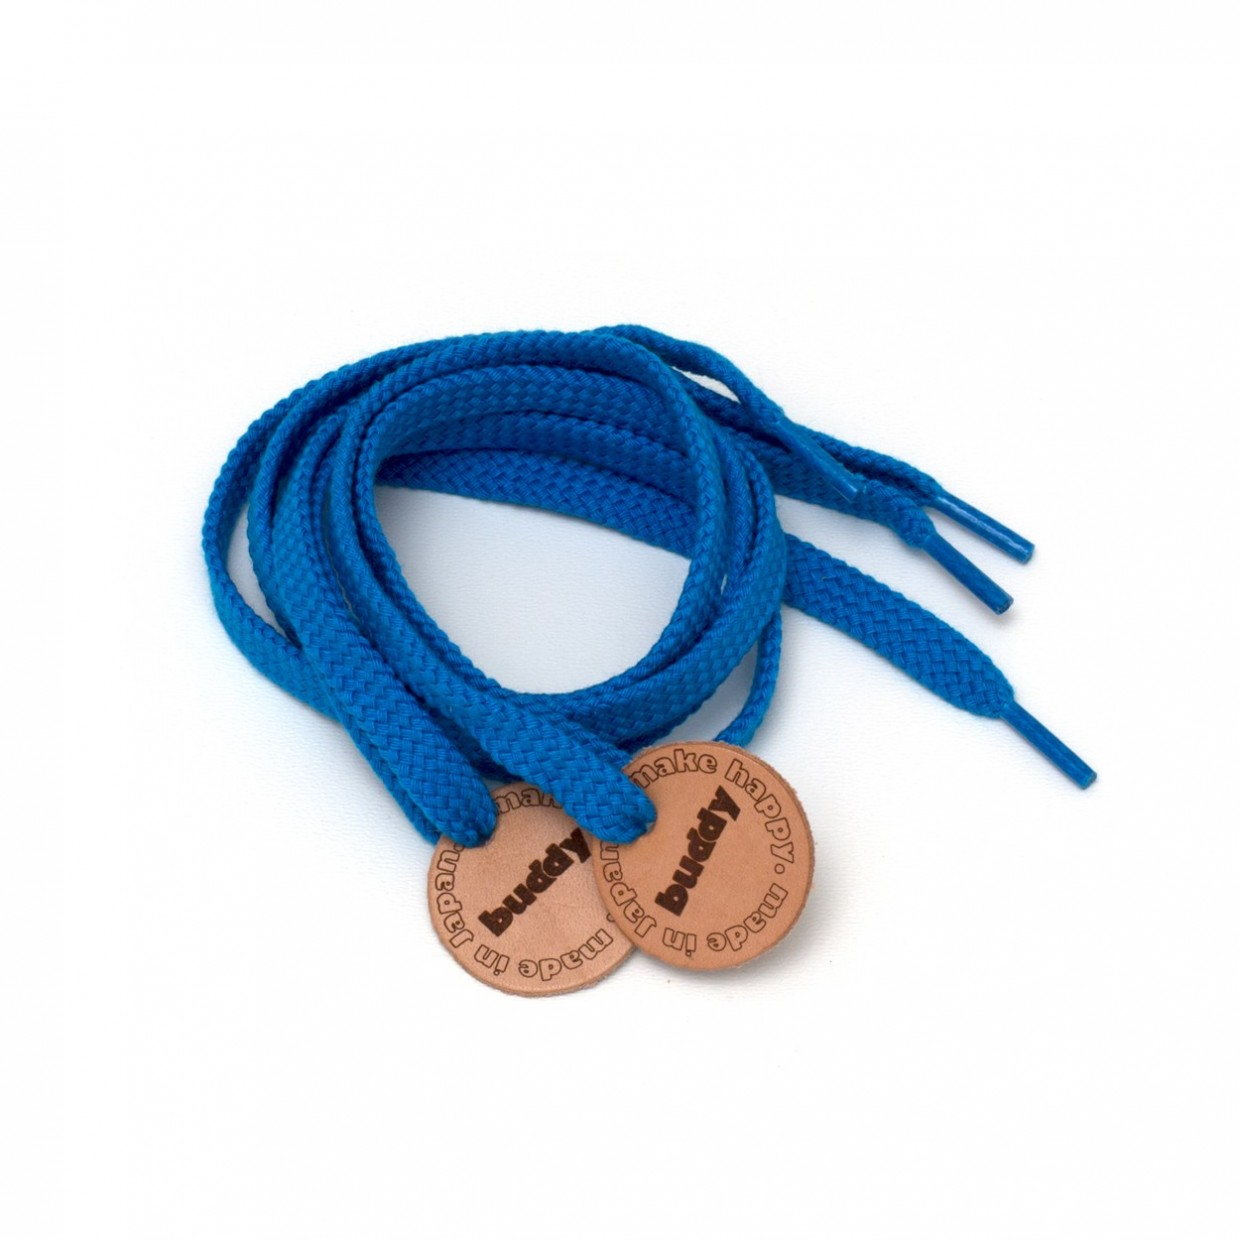 Shoelaces Blue with Leather patch 78 cm : 31 ""